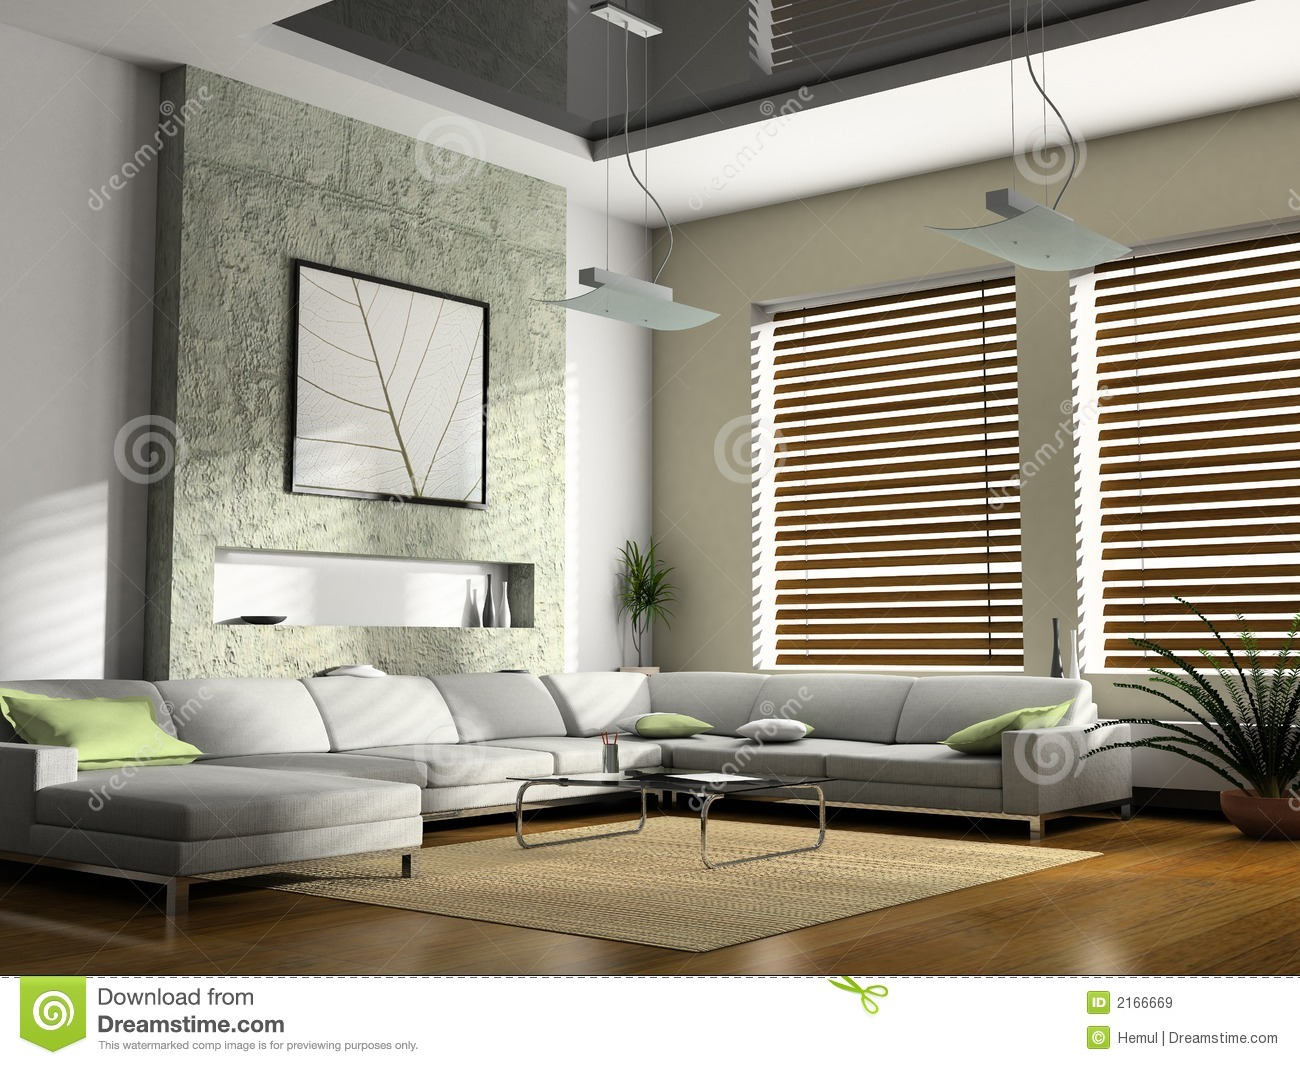 Interior Living-room Royalty Free Stock Images - Image: 2166669